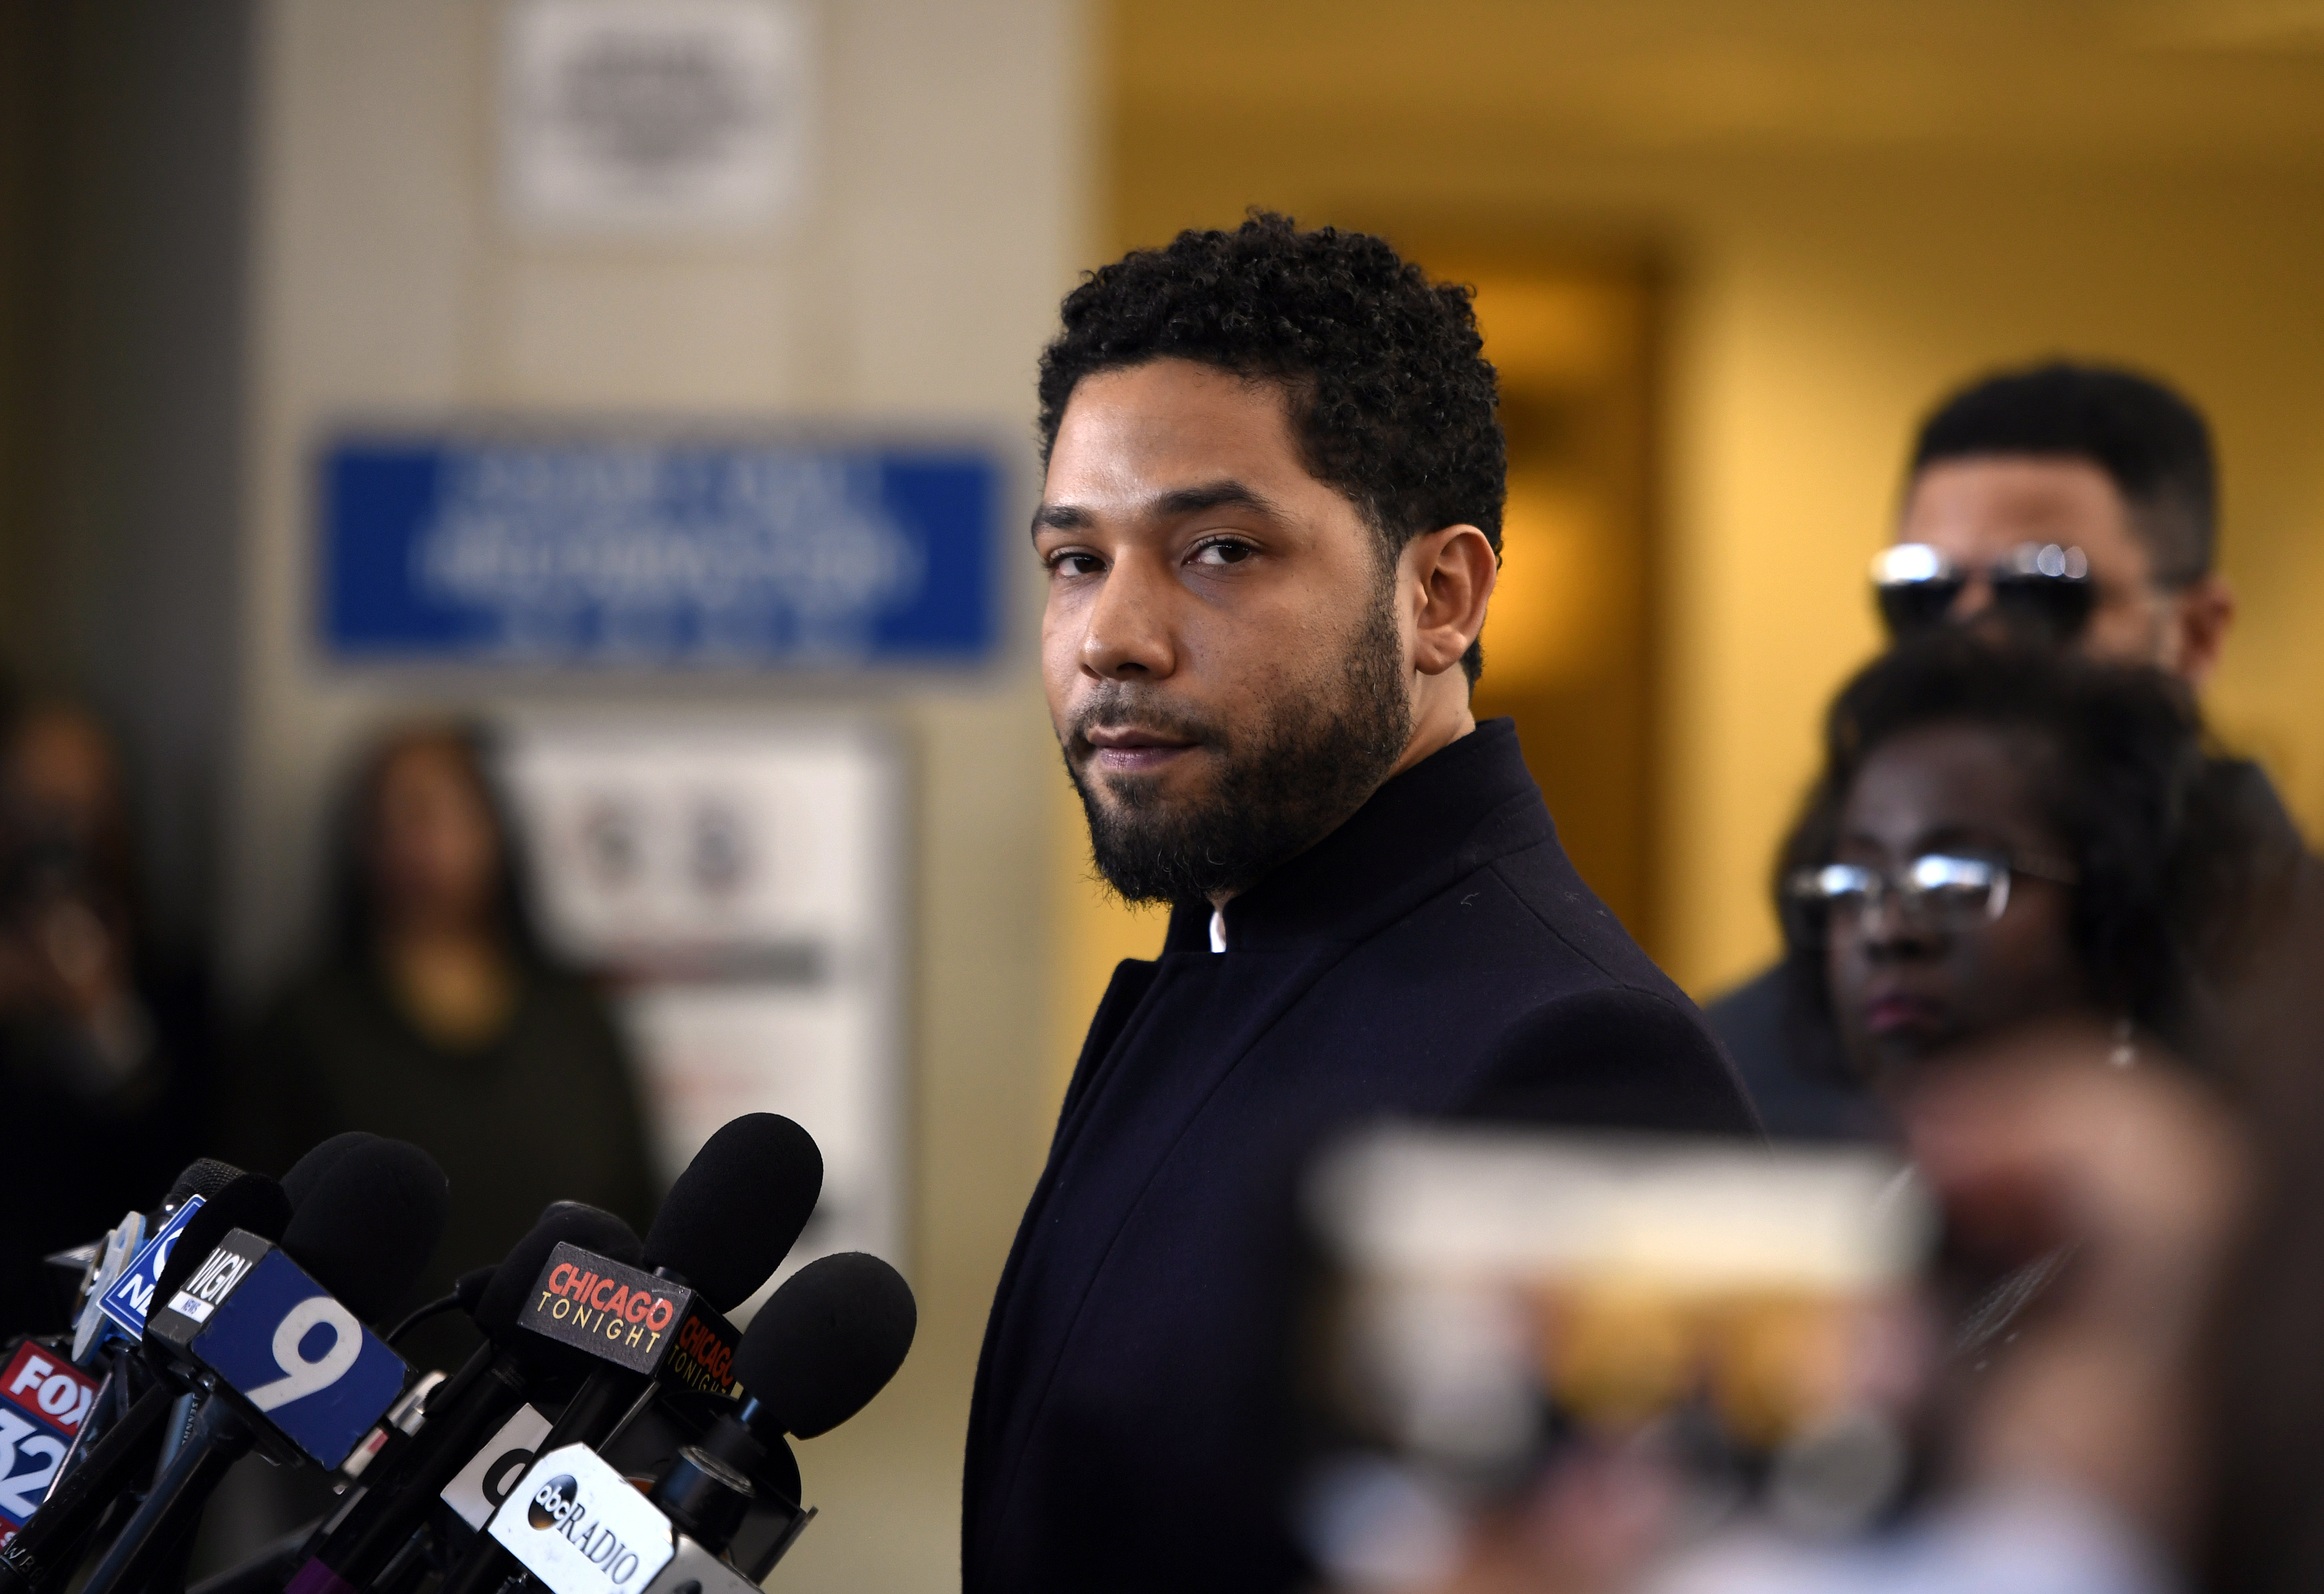 Jussie Smollett case: Why prosecutors dismissed the charges - The